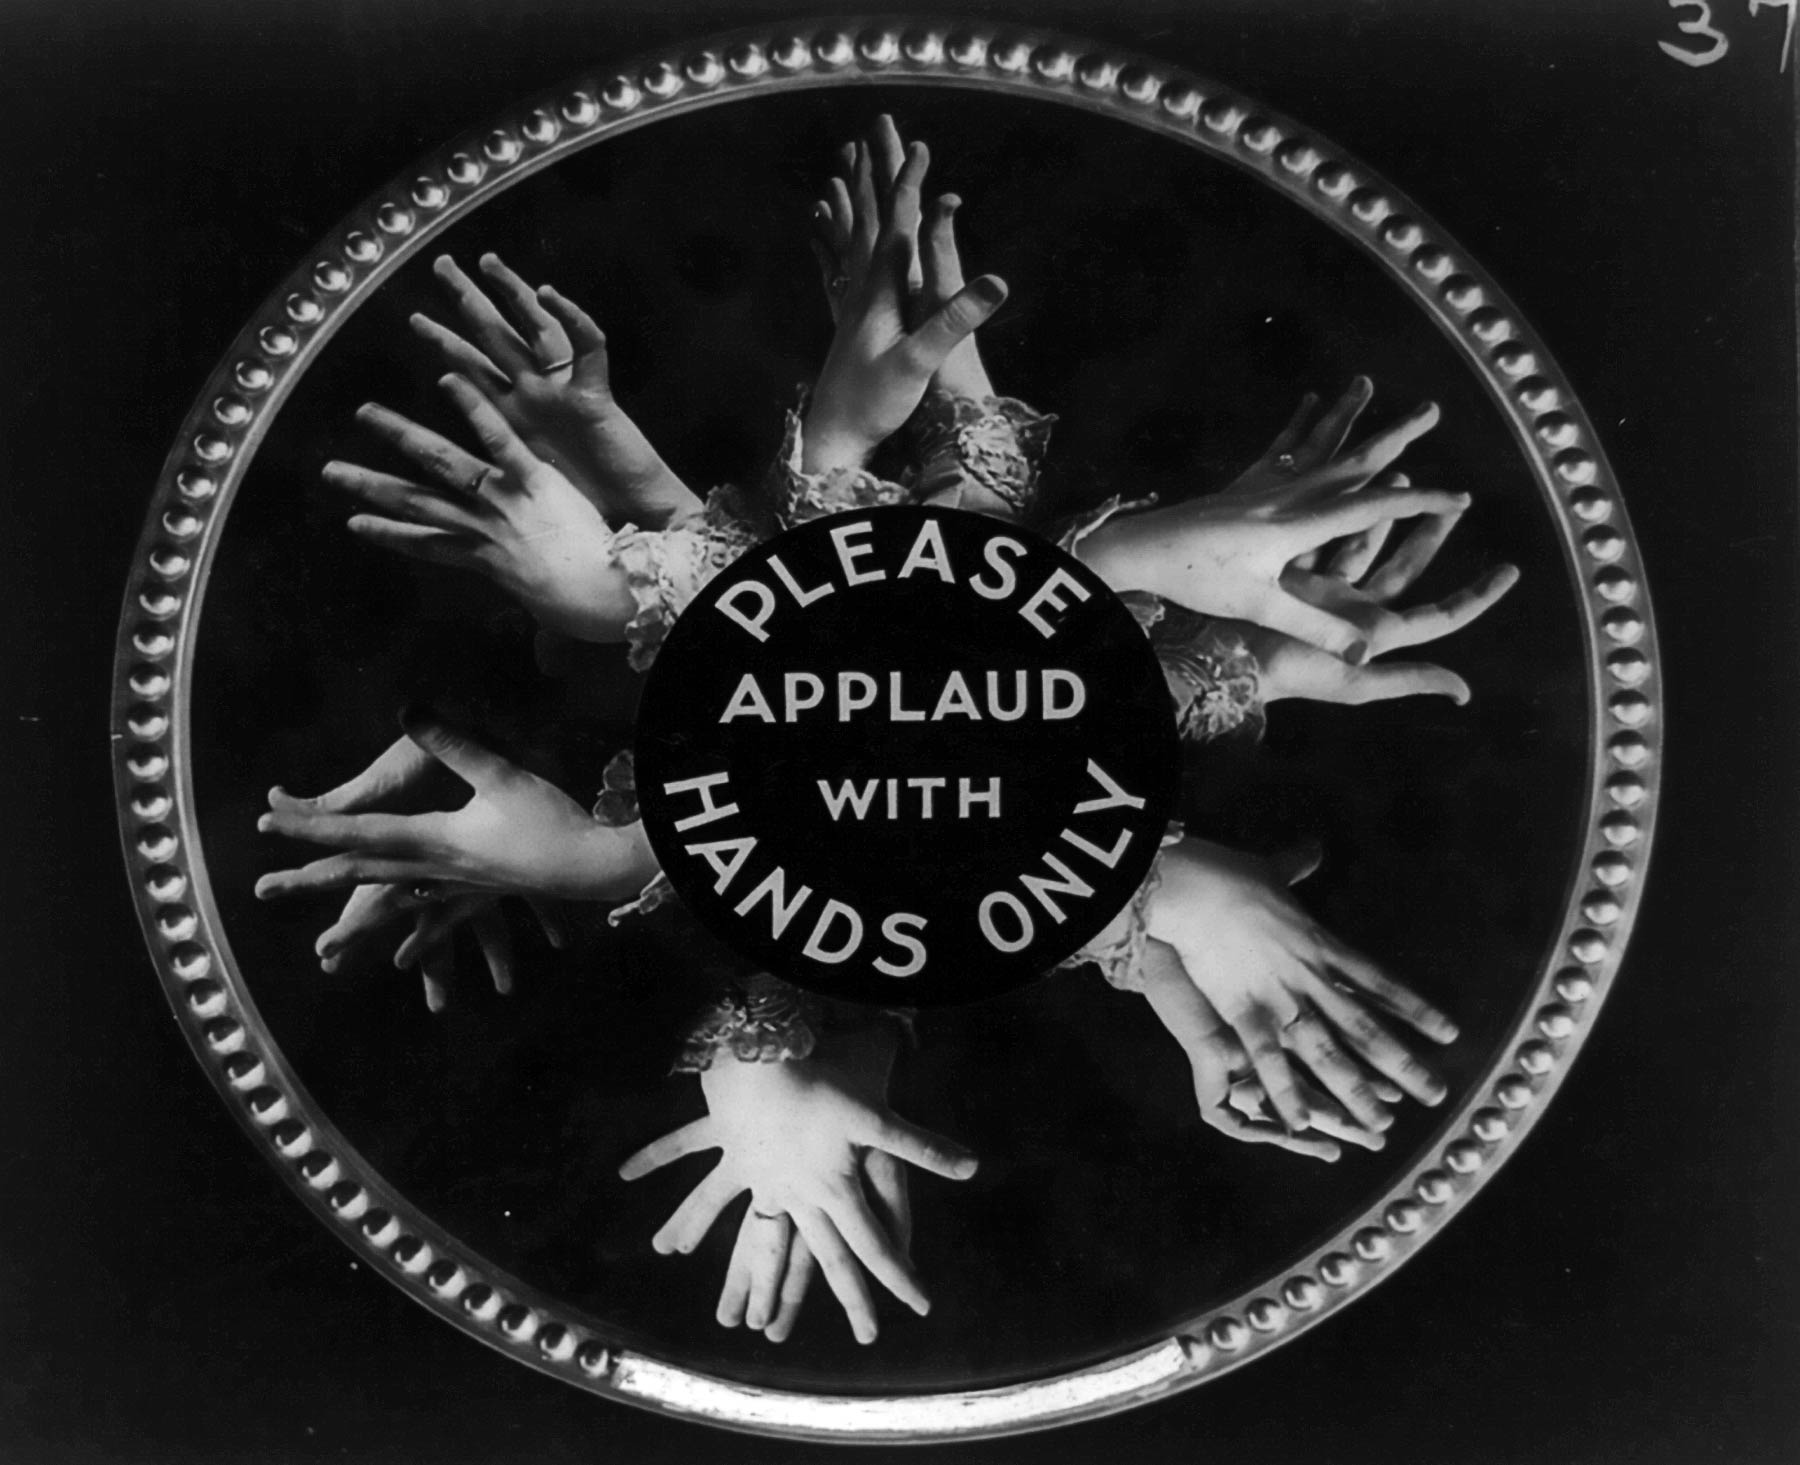 Another collage. Hands applauding and a text that reads: Please, applaud with hands only